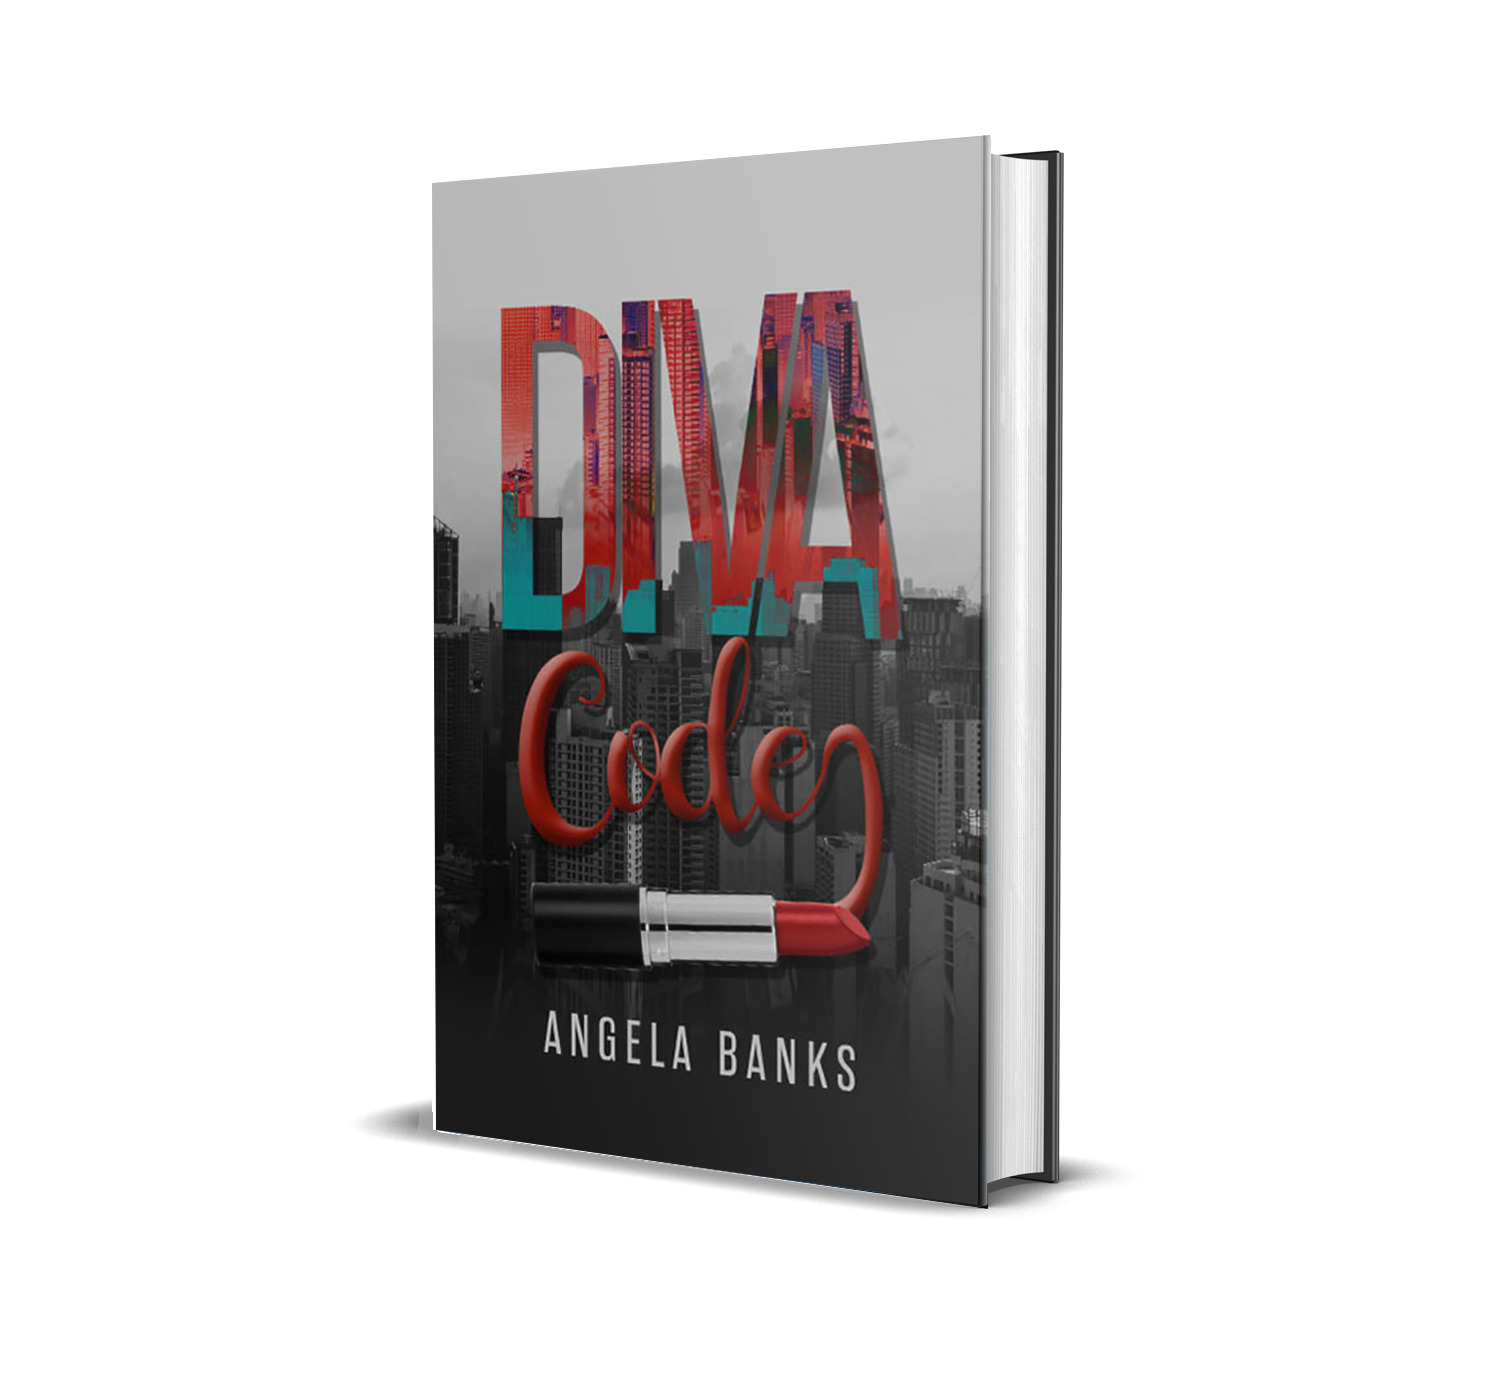 "DALLAS AUTHOR, ANGELA BANKS' NEW BOOK ""THE D.I.V.A. Code: CODE OF ETHICS FOR TODAY'S 21ST CENTURY WOMAN"", ASSISTS WOMEN IN HEALING FROM TRAUMA AND ABUSE."